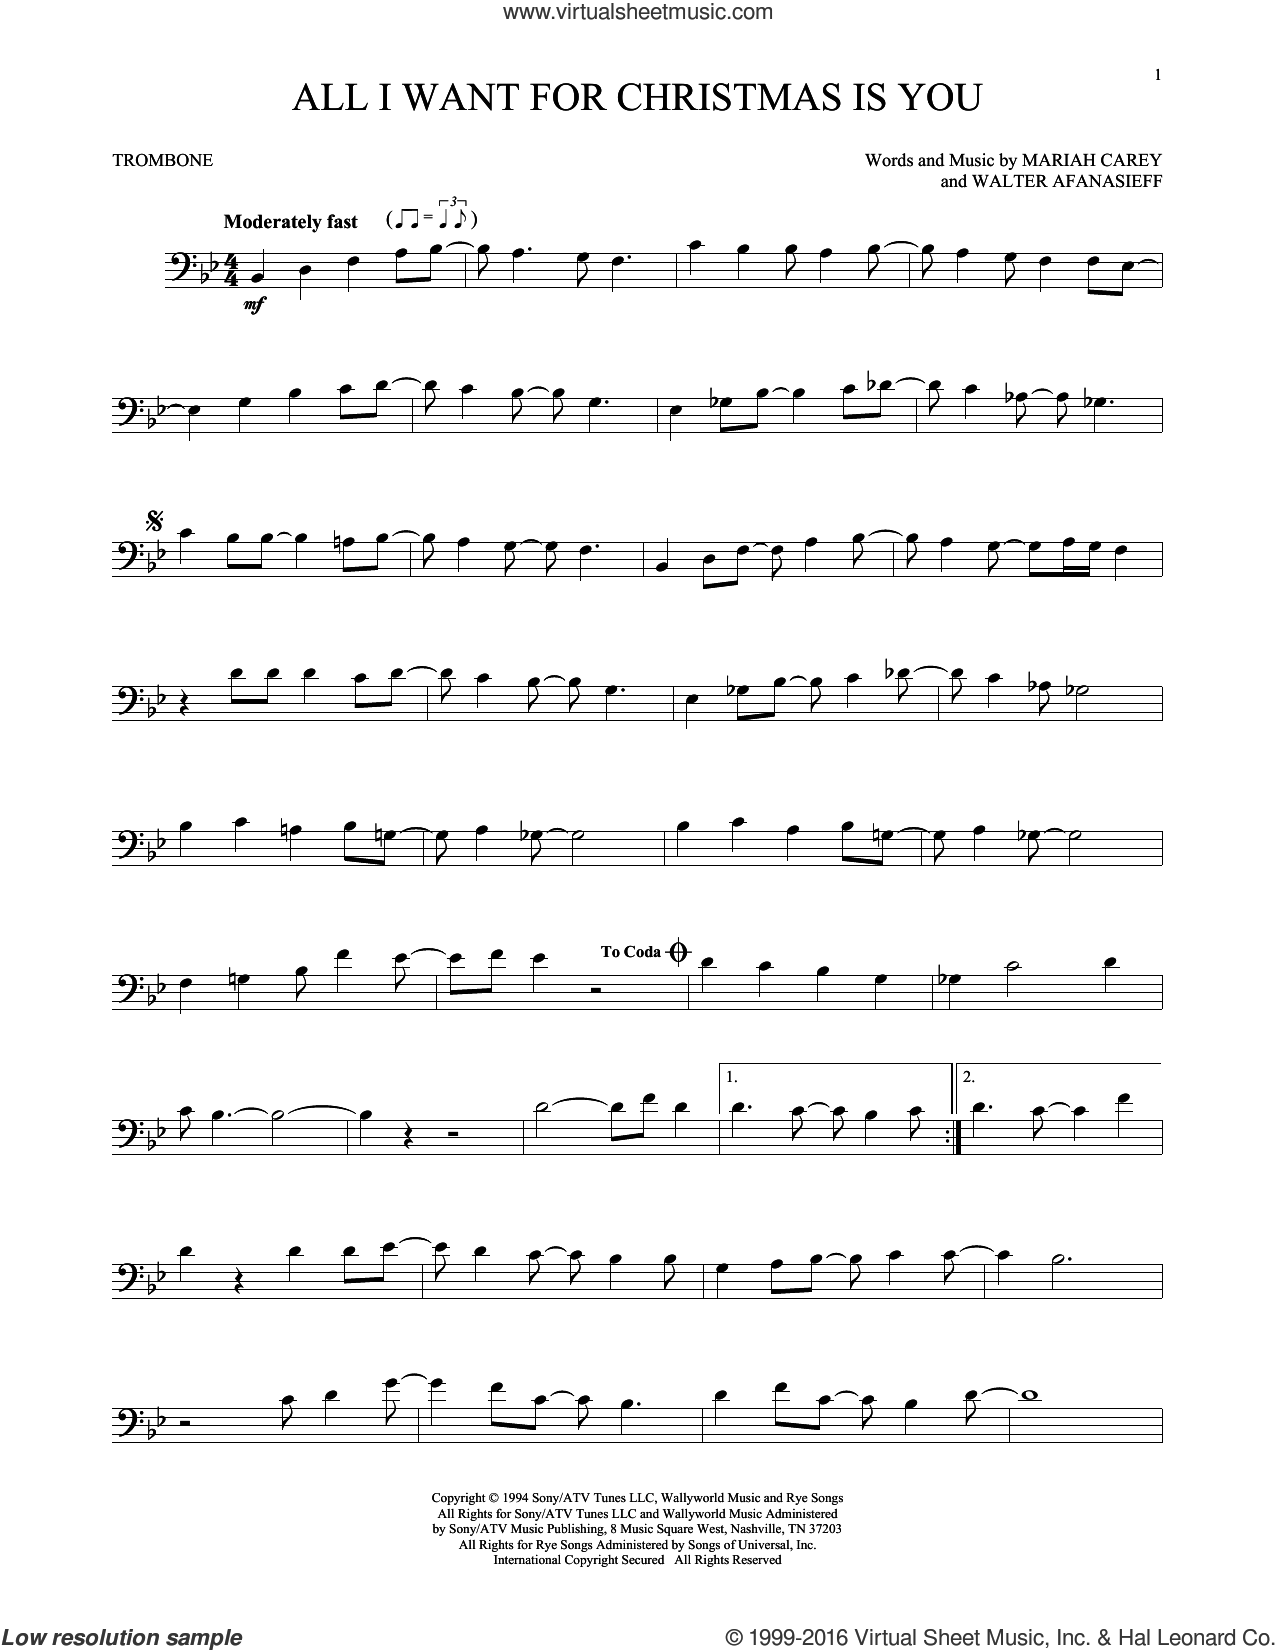 All I Want For Christmas Is You sheet music for trombone solo by Mariah Carey and Walter Afanasieff, intermediate skill level